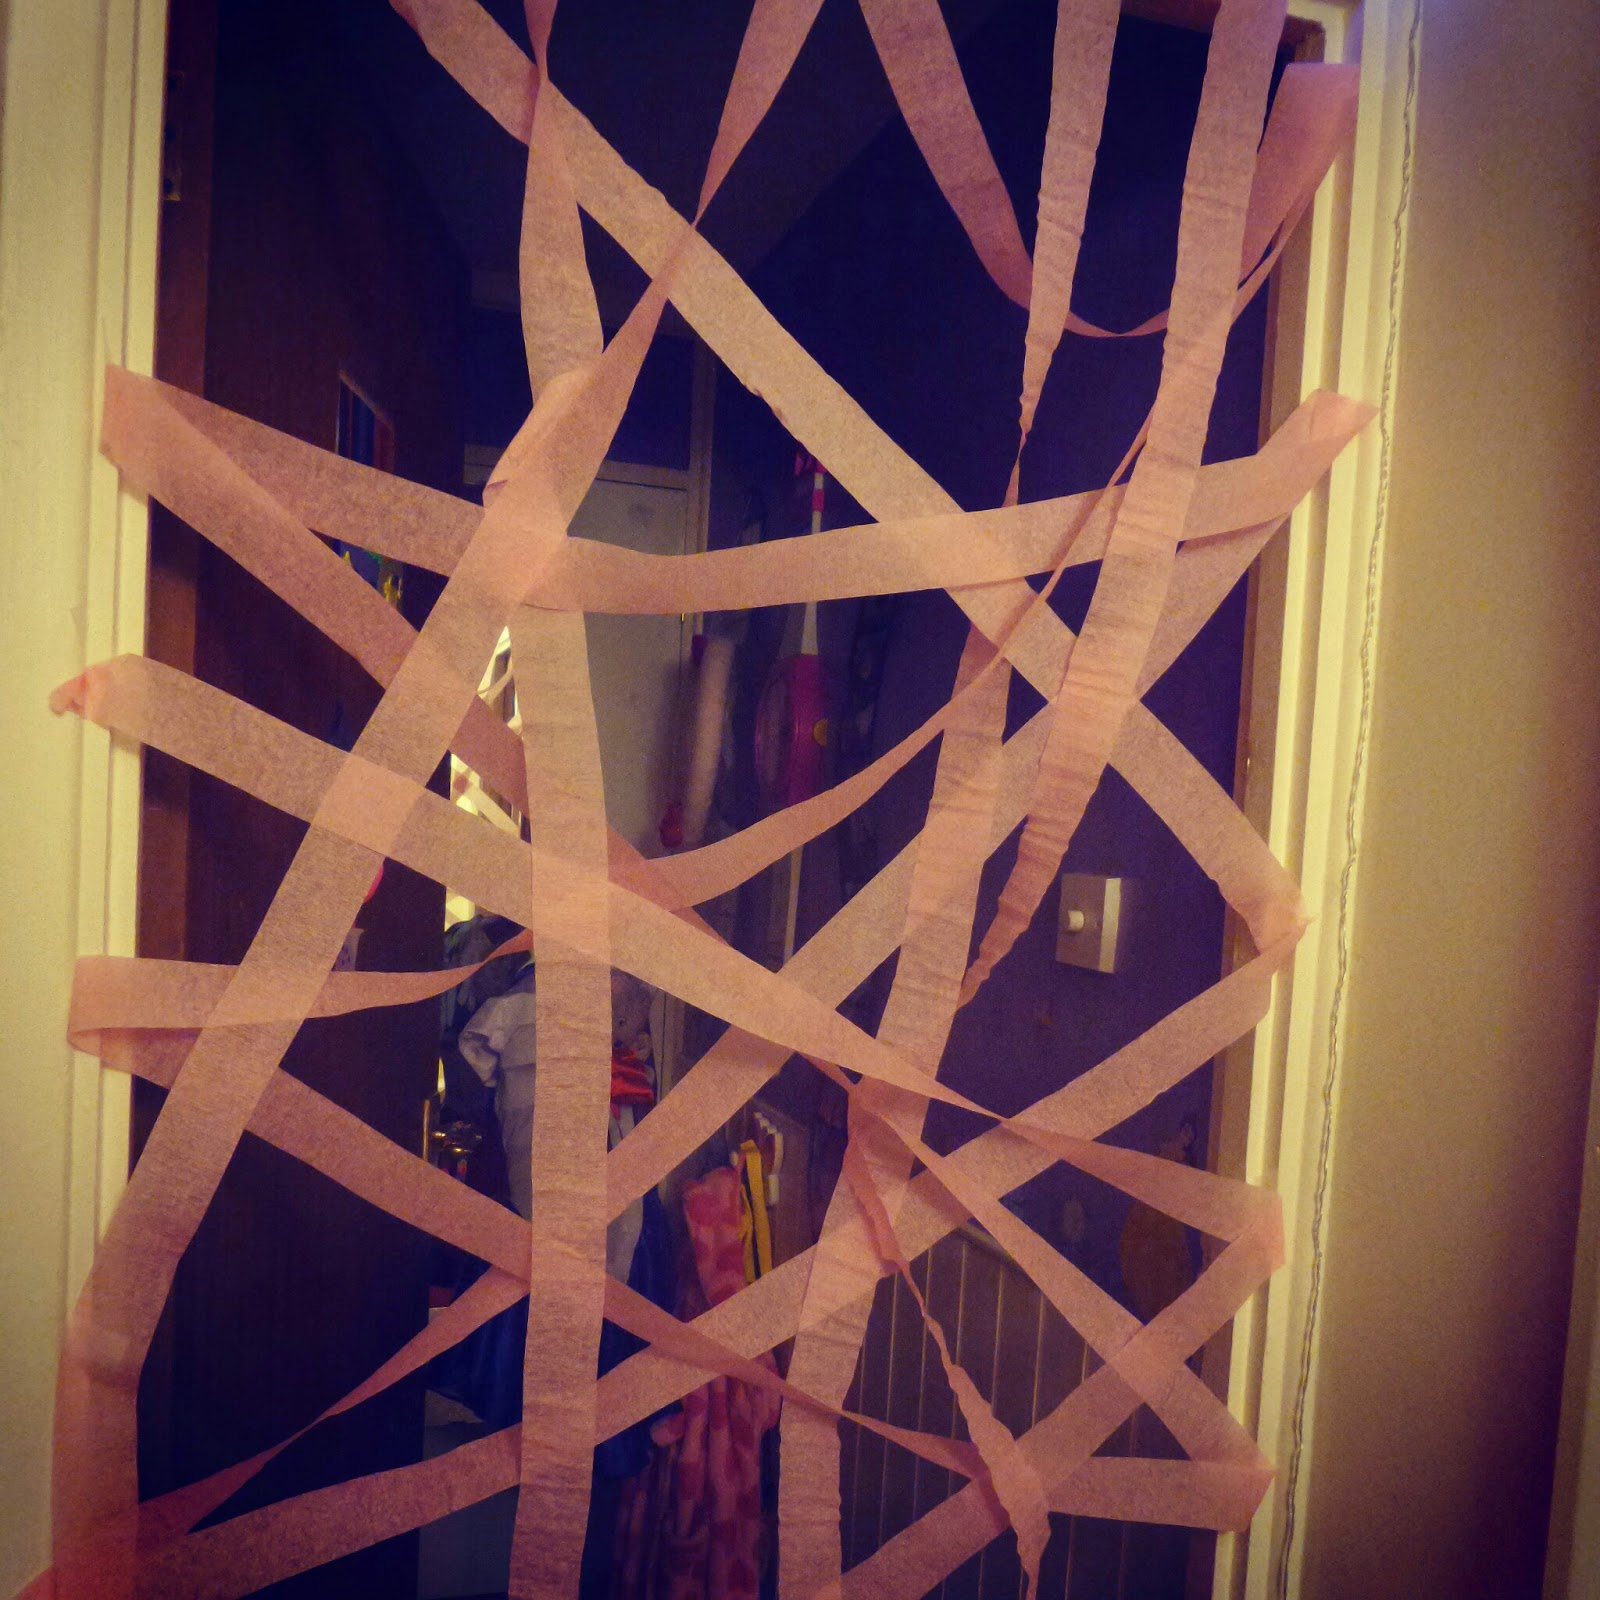 Top Ender's Birthday Door